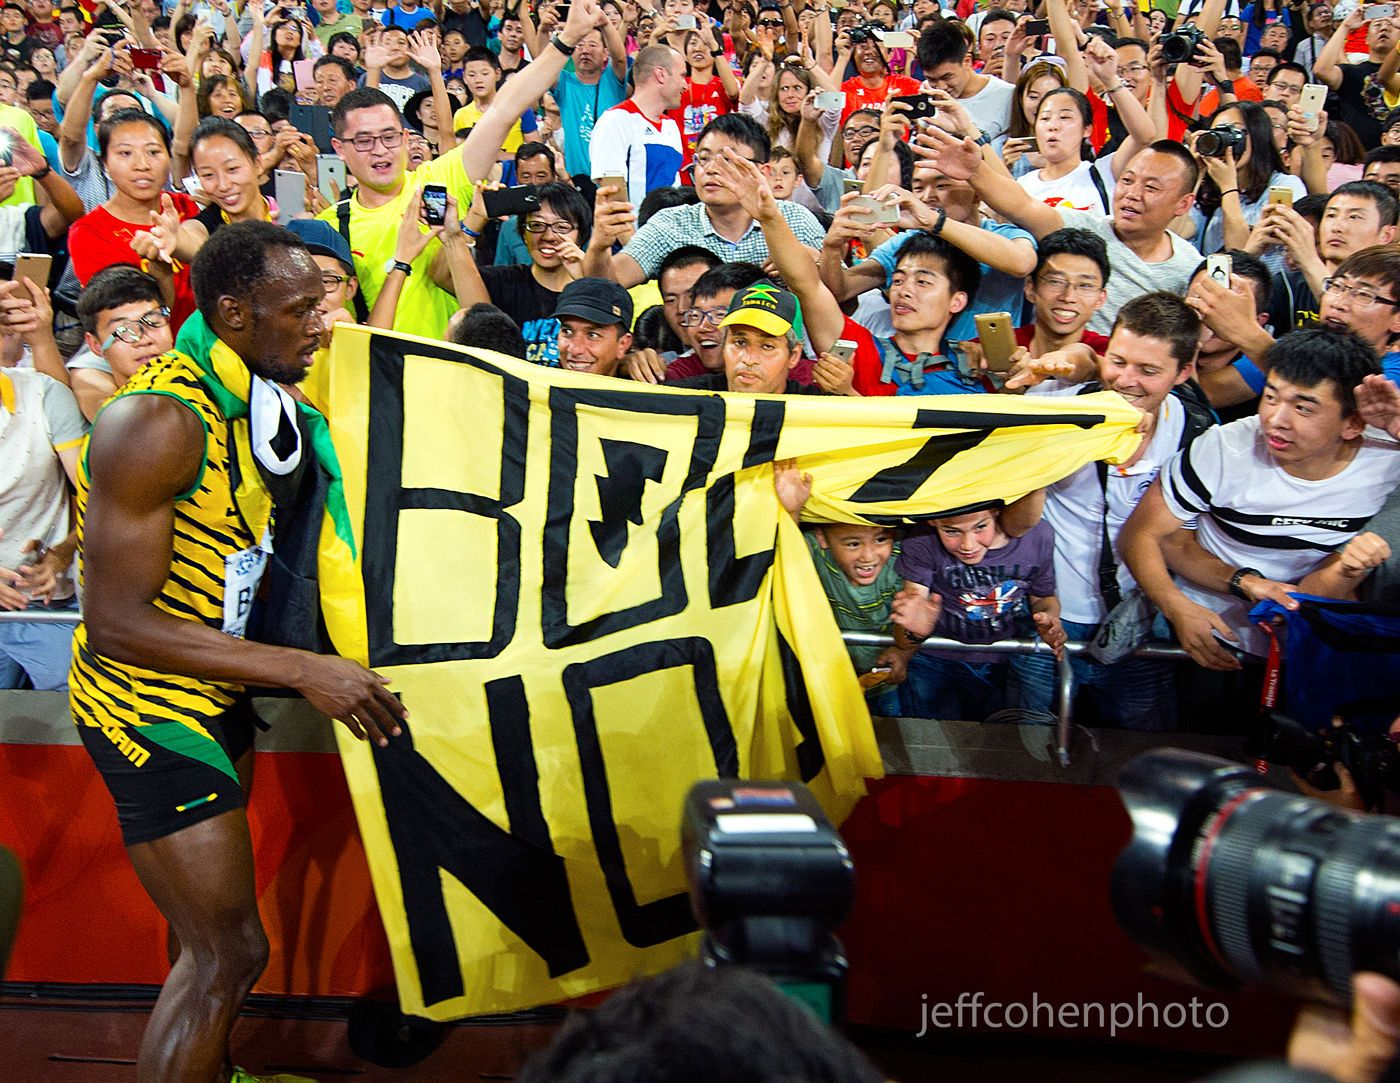 1beijing2015_day2_bolt_fans_100_jeff_cohen_photo_7309_web.jpg